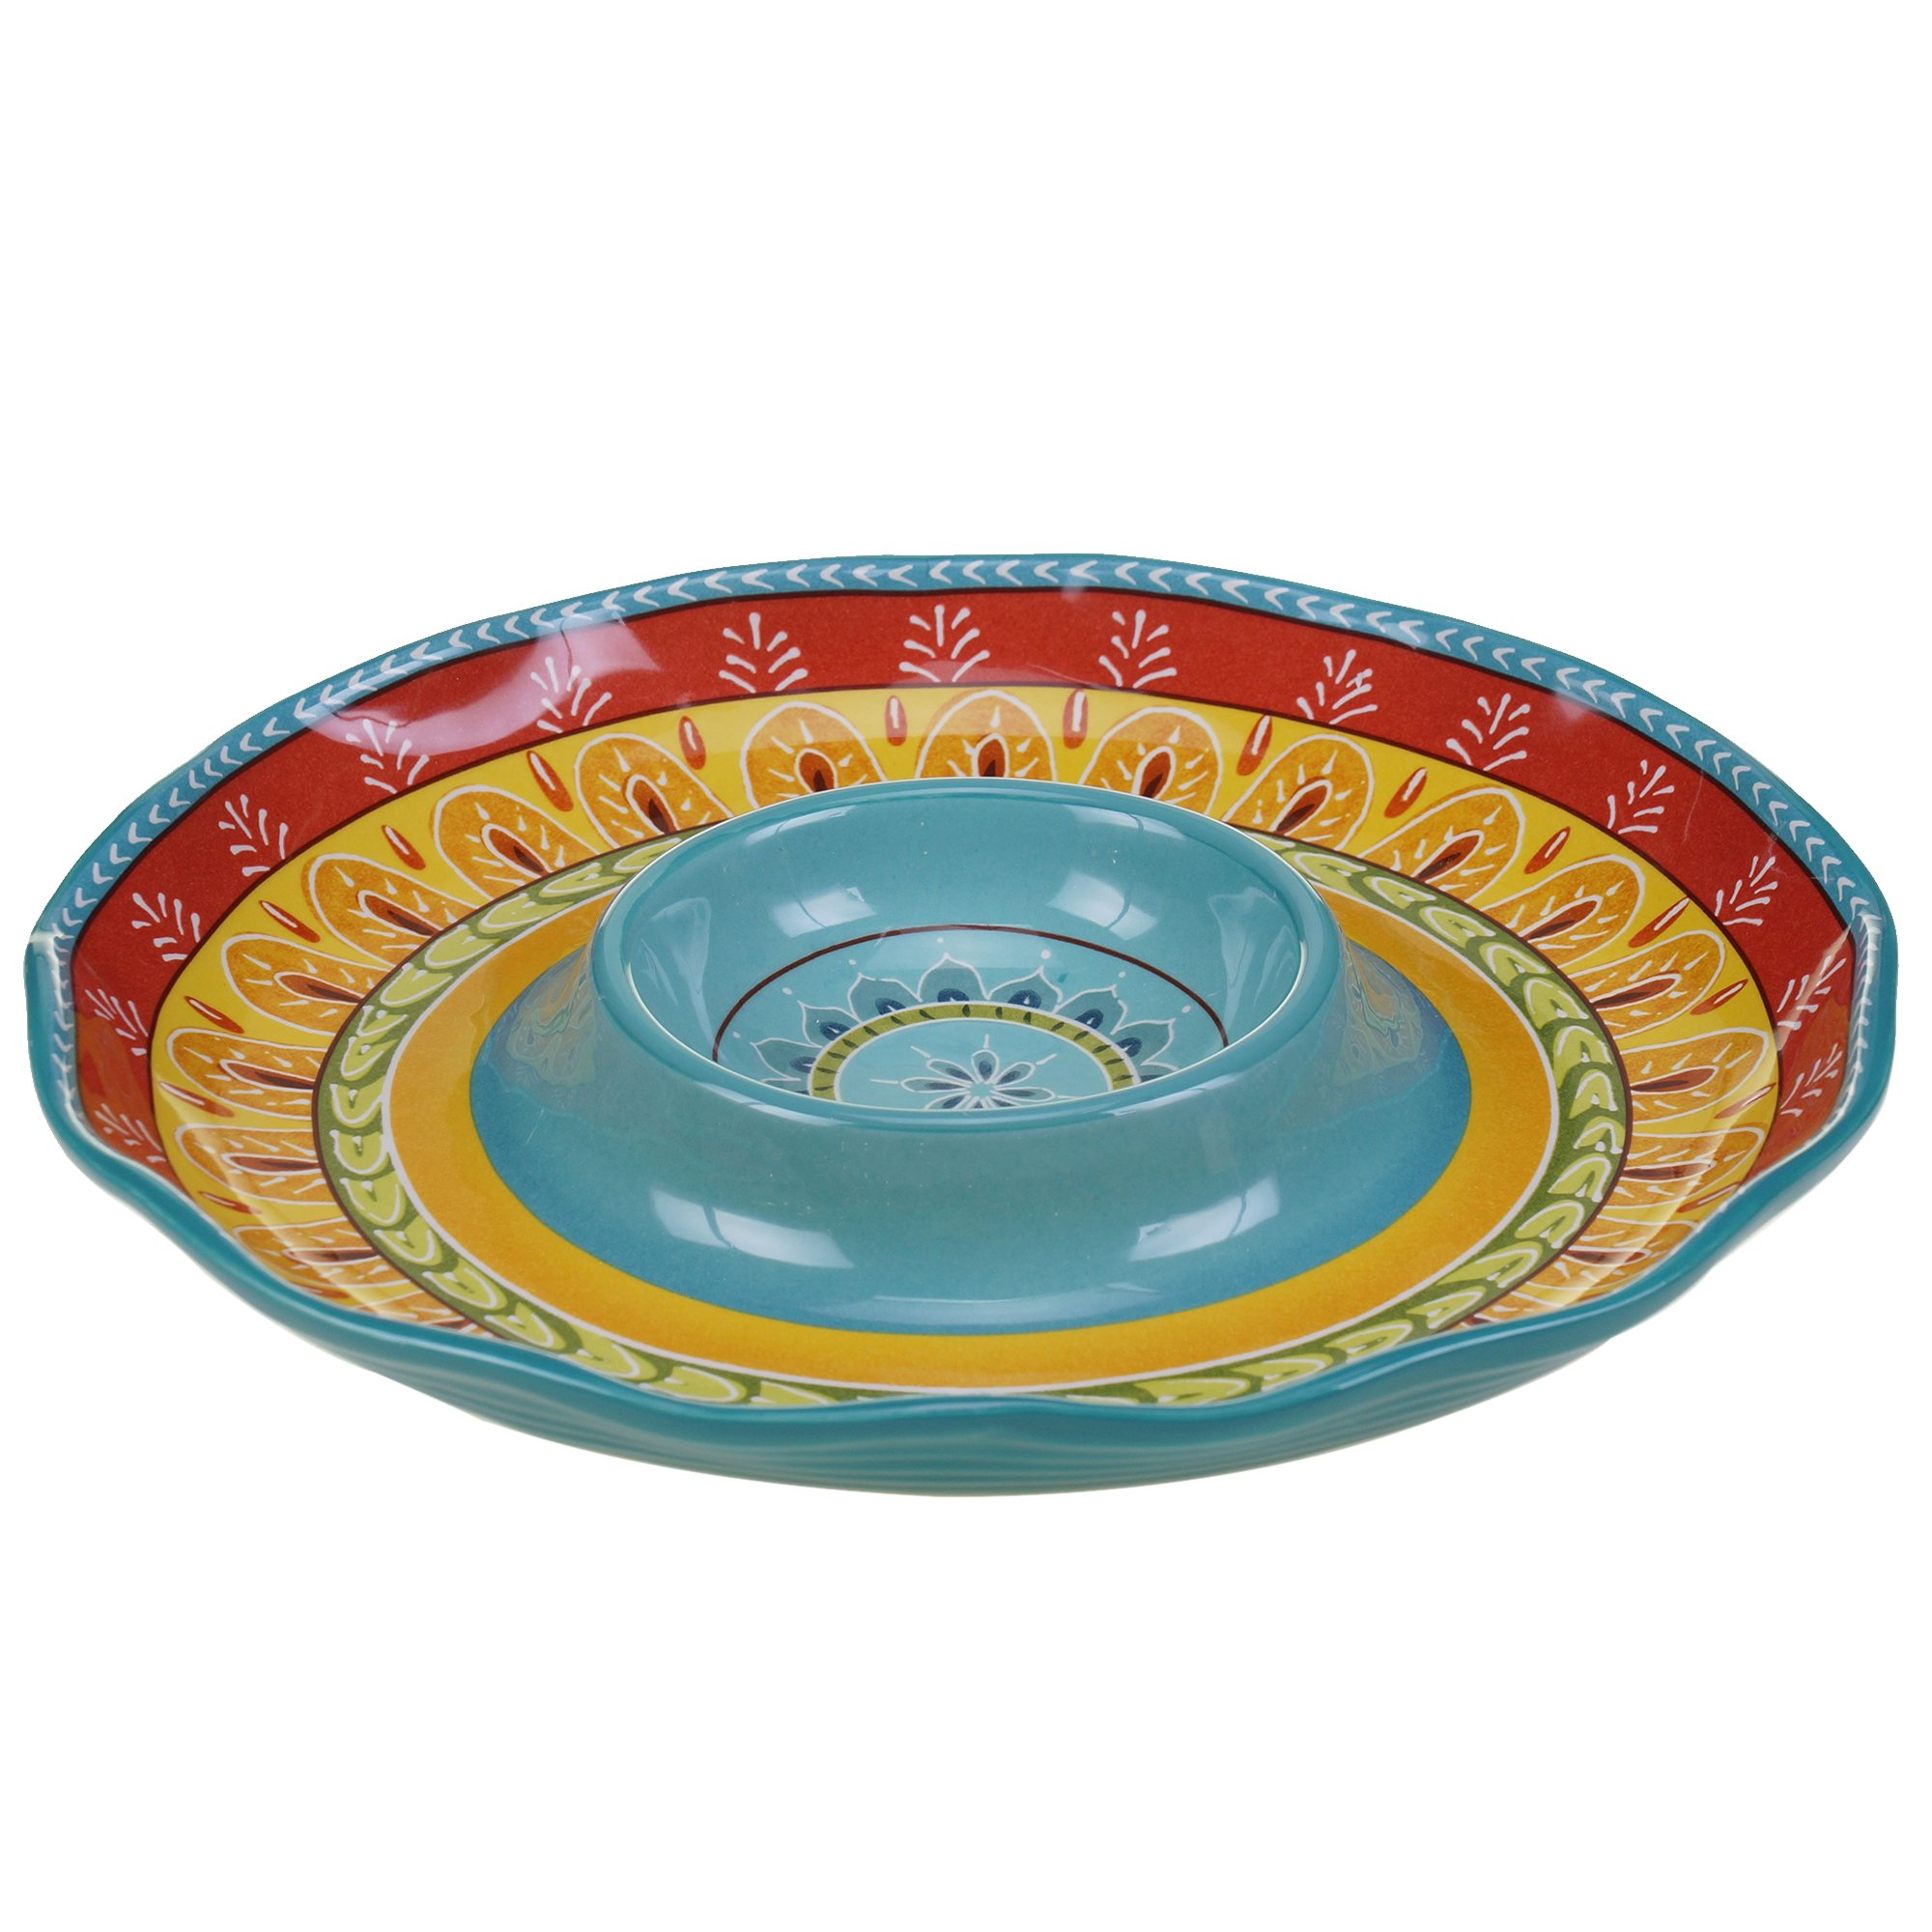 Certified International Valencia Chip & Dip, 13.25'', Multicolor